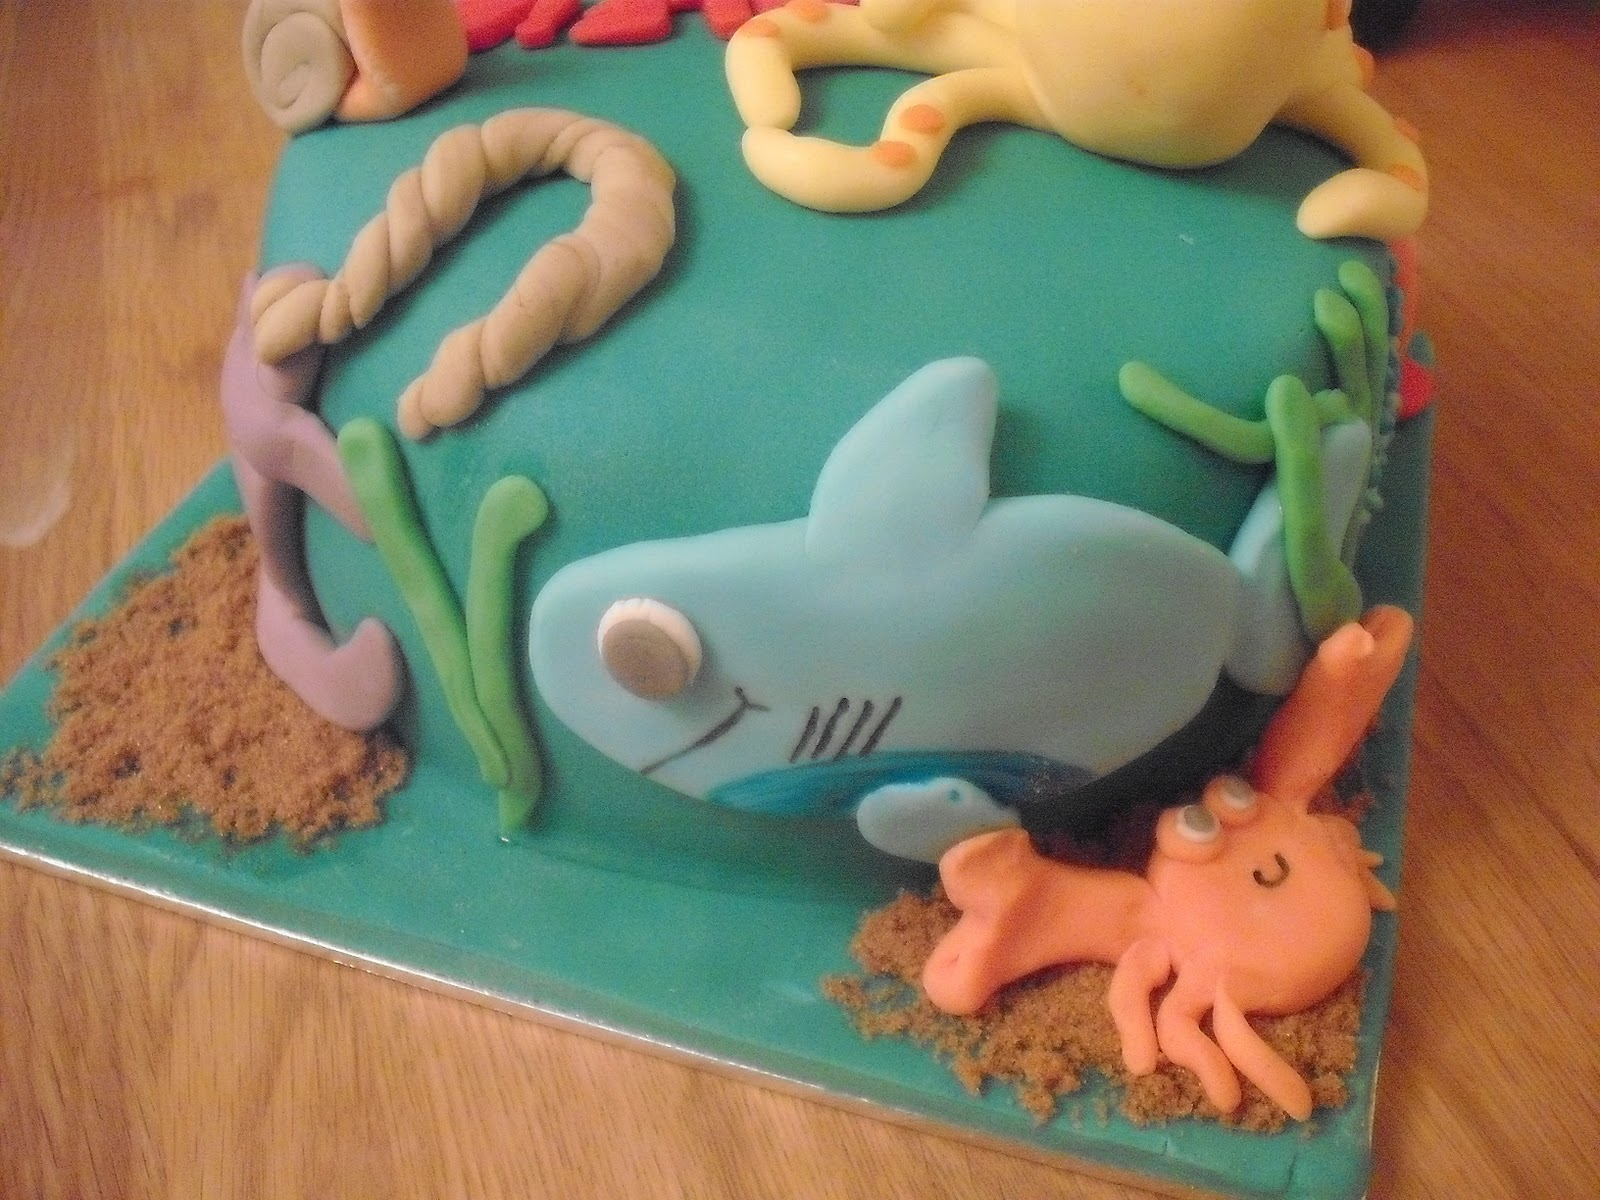 Cake Art Plastic Icing Review : THE CUPCAKE QUEEN: Silver Spoons Mich Turner Range Review ...